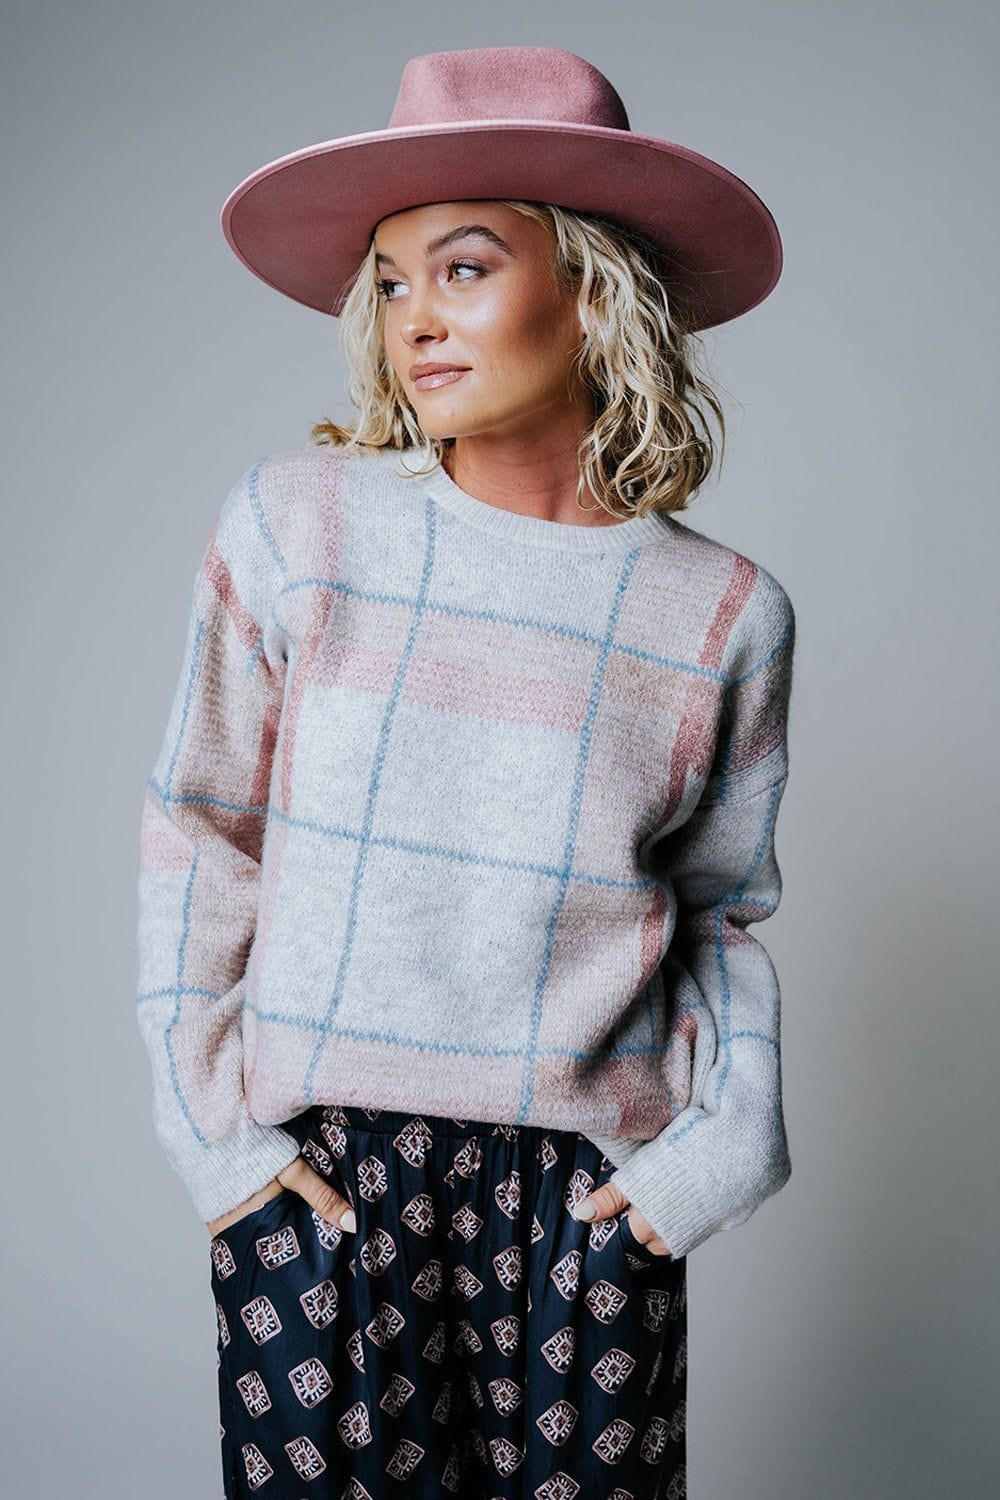 Plaid in Love Pullover-Top-n/a-S-Clad & Cloth